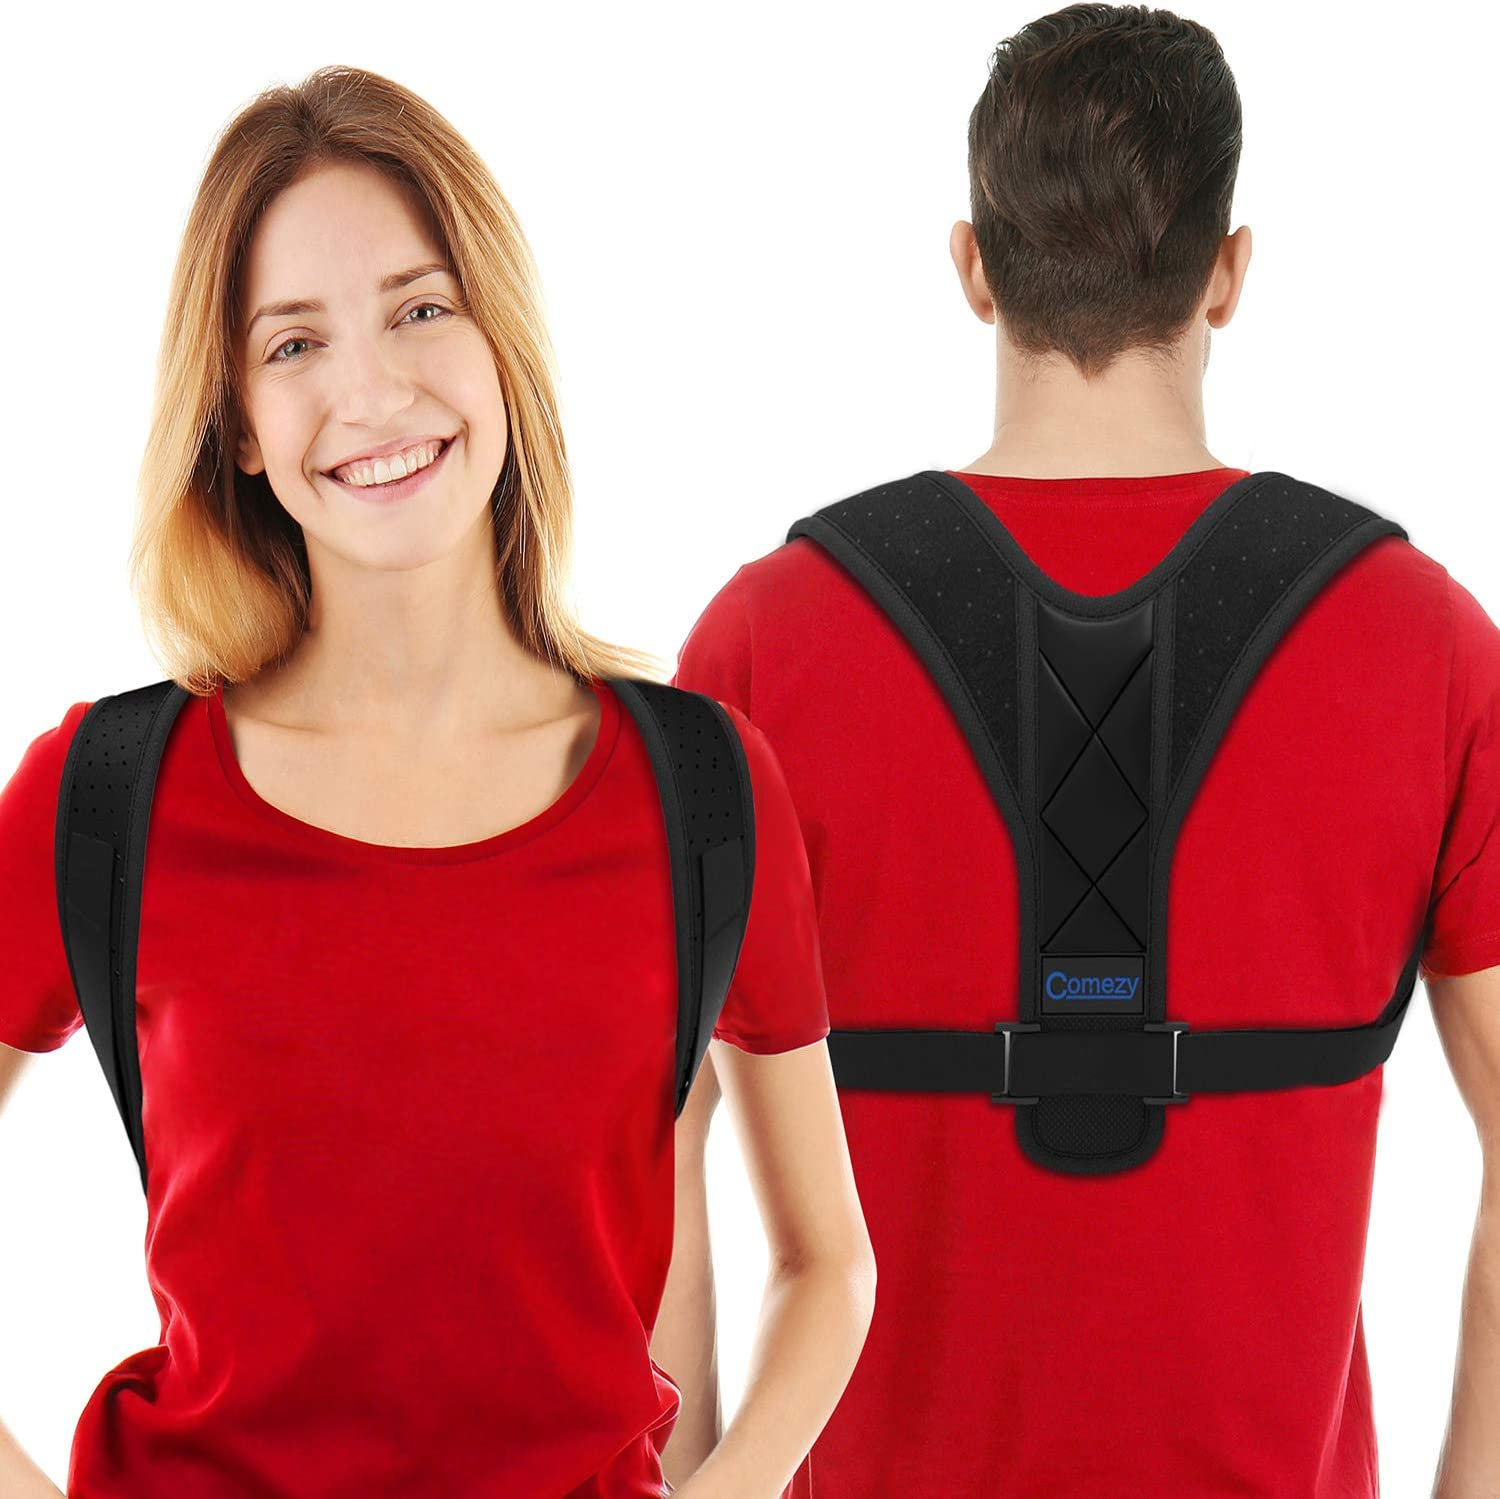 Posture Corrector For Men And Women, Upper Back Brace For Clavicle Support, Adjustable Back Straightener And Providing Pain Relief From Neck, Back and Shoulder (26-48 inches)